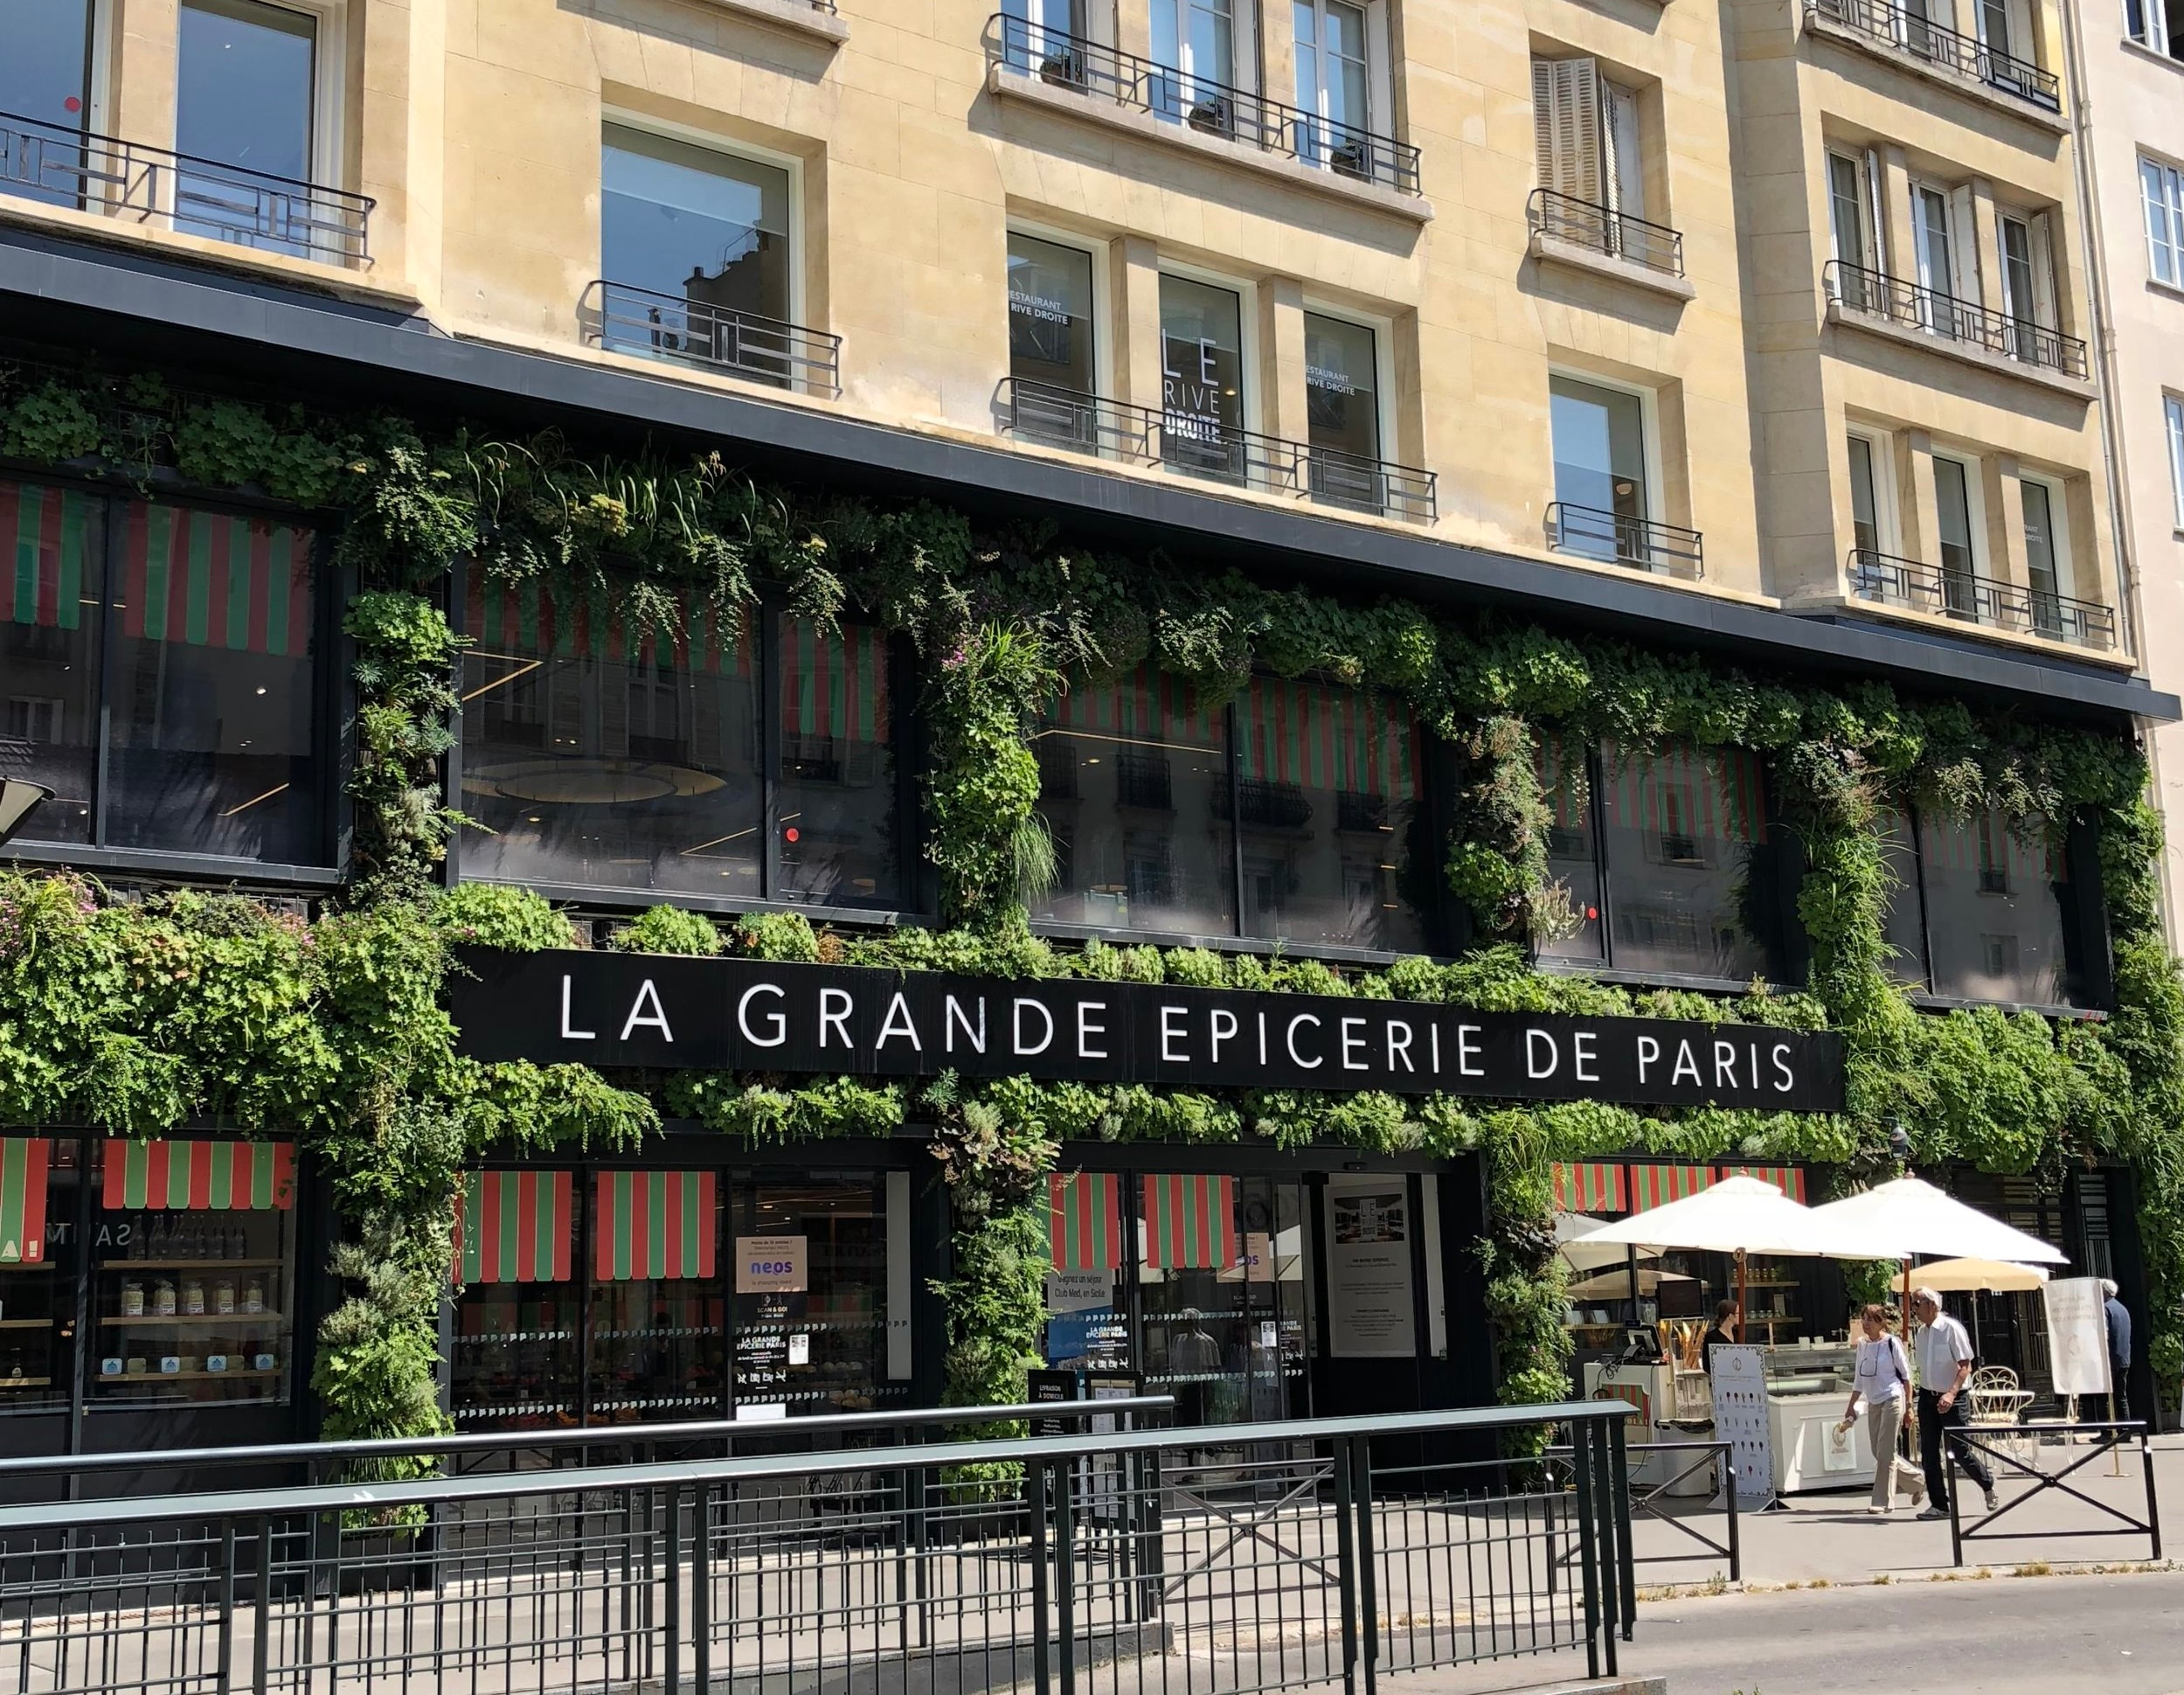 La Grande Epicerie on Rue Passy in the 16th